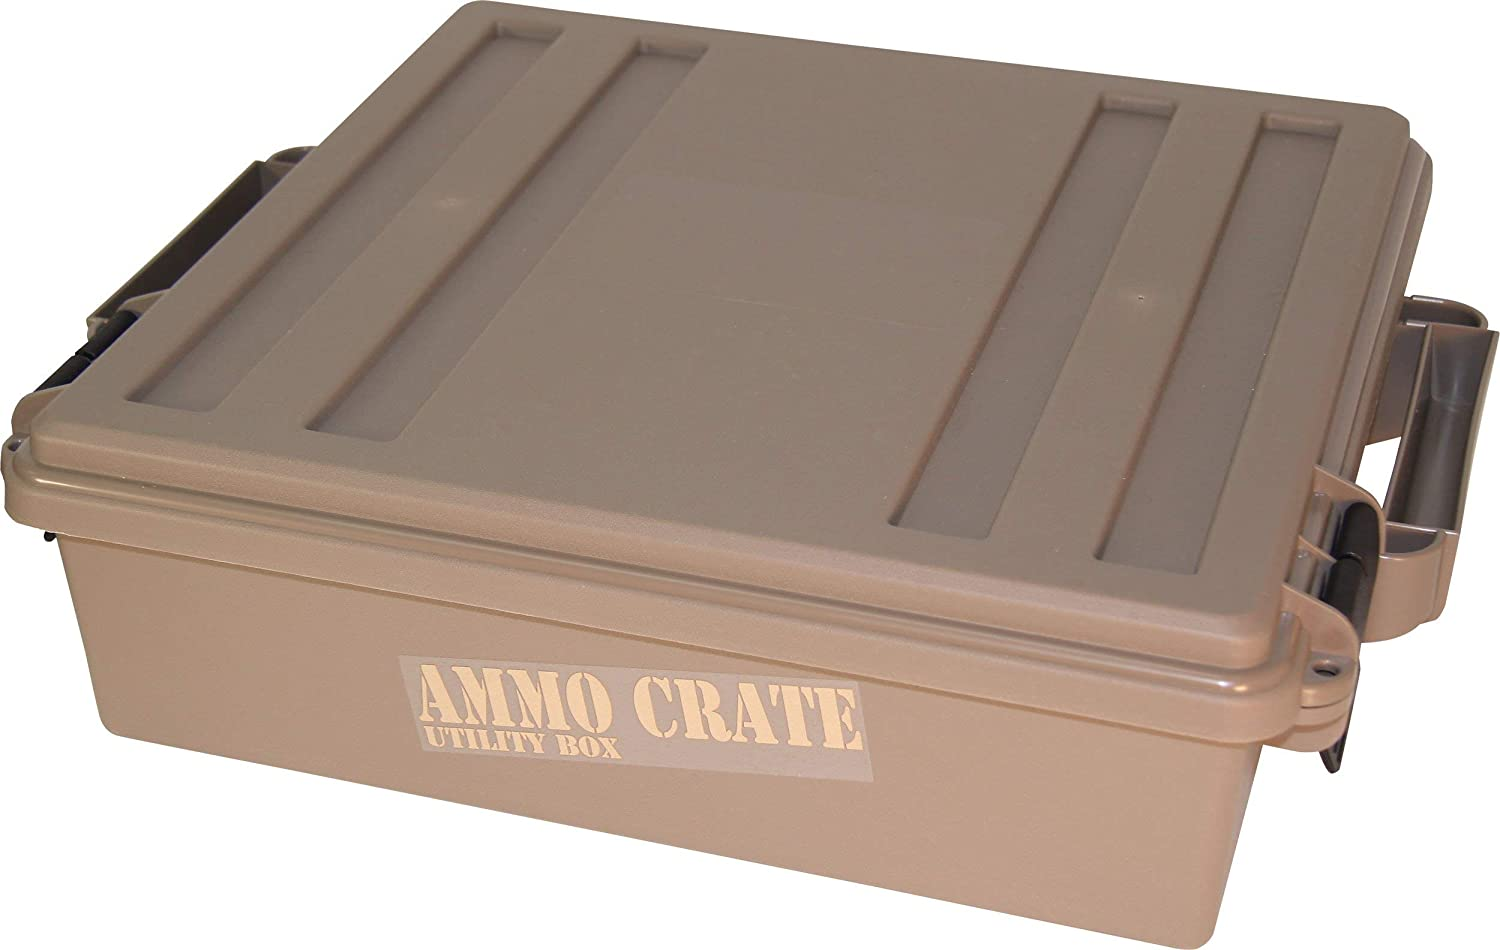 MTM ACR5 Ammo Crate Utility Box Pack of 2